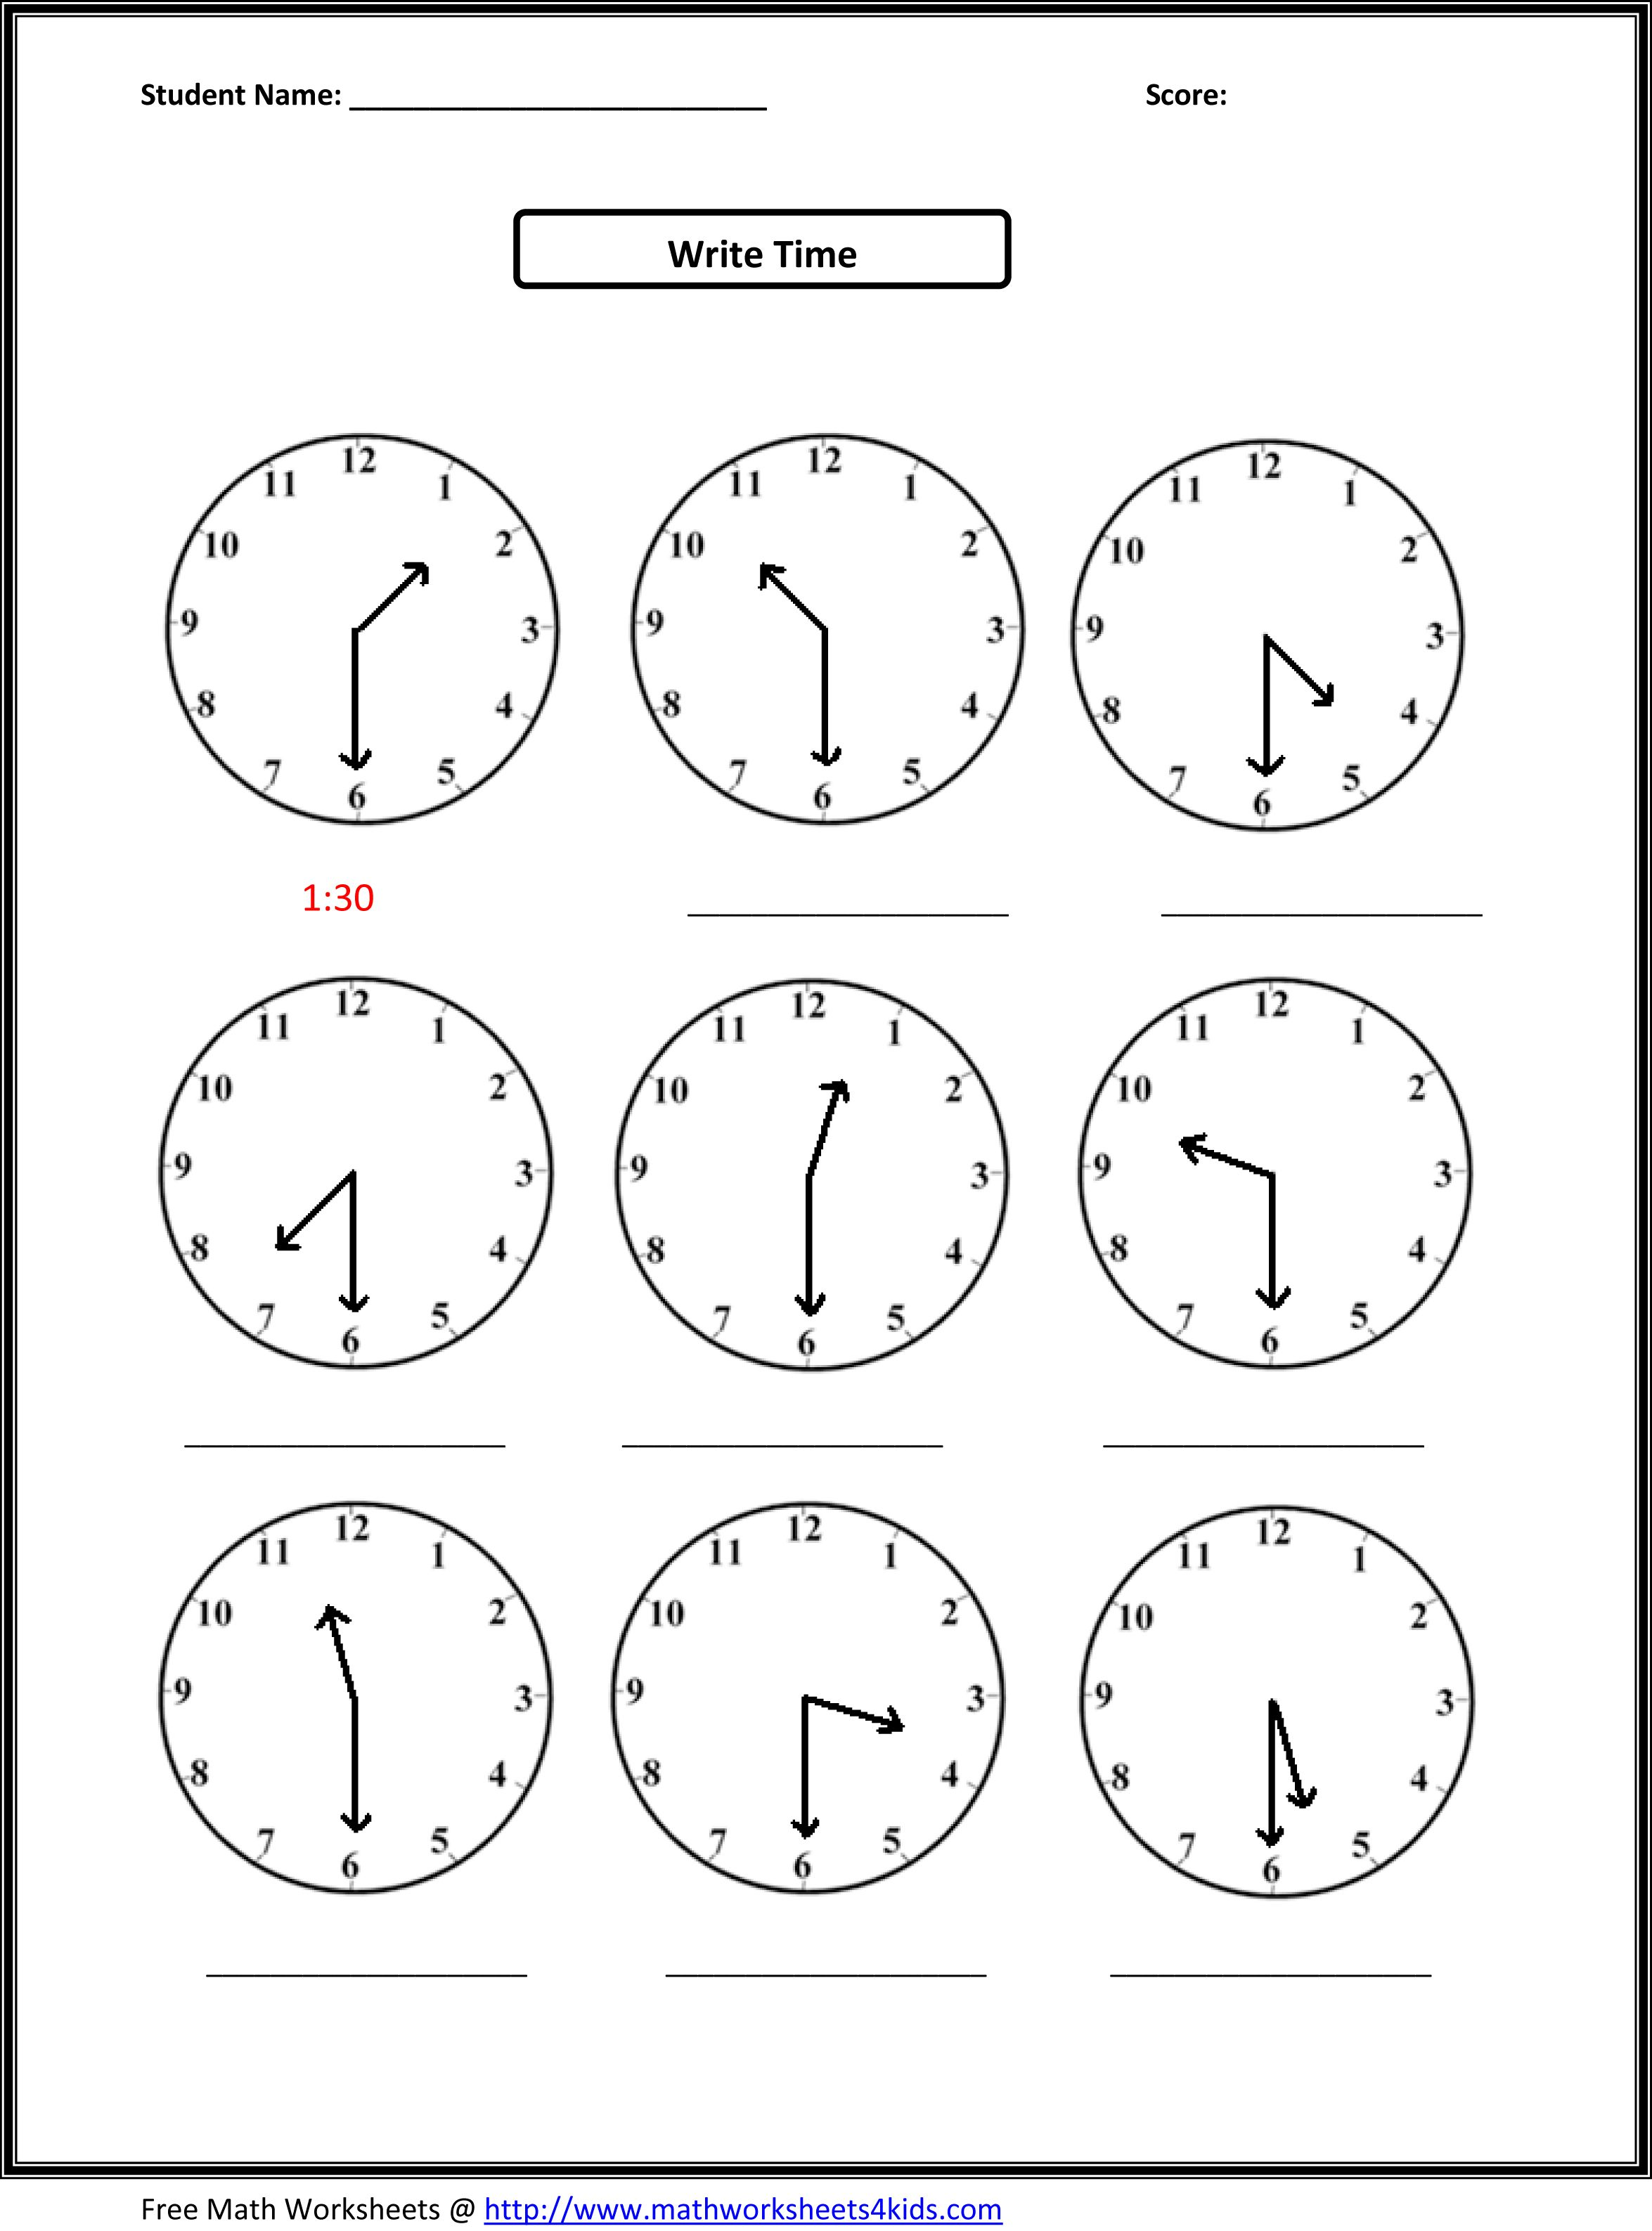 Proatmealus  Pleasing Worksheet On Time For Grade   Reocurent With Glamorous Free Printable Telling Time Worksheets Nd Grade  Reocurent With Alluring Elementary Esl Worksheets Also Materials And Their Properties Worksheets In Addition Tle Worksheet And Balto Worksheets As Well As  Digit Subtraction Worksheets Additionally Adjectives Worksheet Year  From Reocurentcom With Proatmealus  Glamorous Worksheet On Time For Grade   Reocurent With Alluring Free Printable Telling Time Worksheets Nd Grade  Reocurent And Pleasing Elementary Esl Worksheets Also Materials And Their Properties Worksheets In Addition Tle Worksheet From Reocurentcom